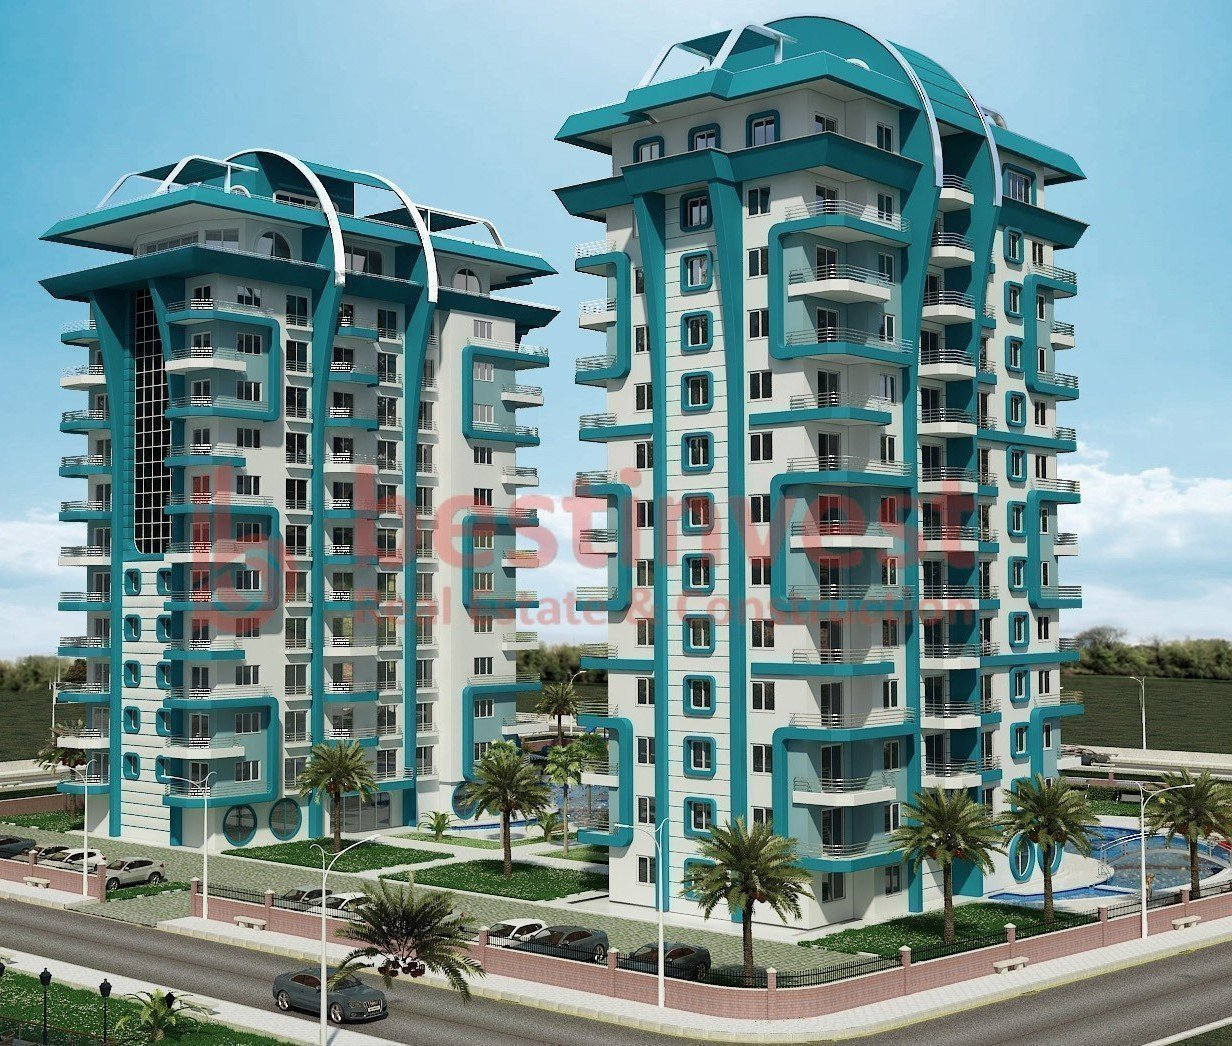 Sale property abroad Apartments in Angels Home in Alanya